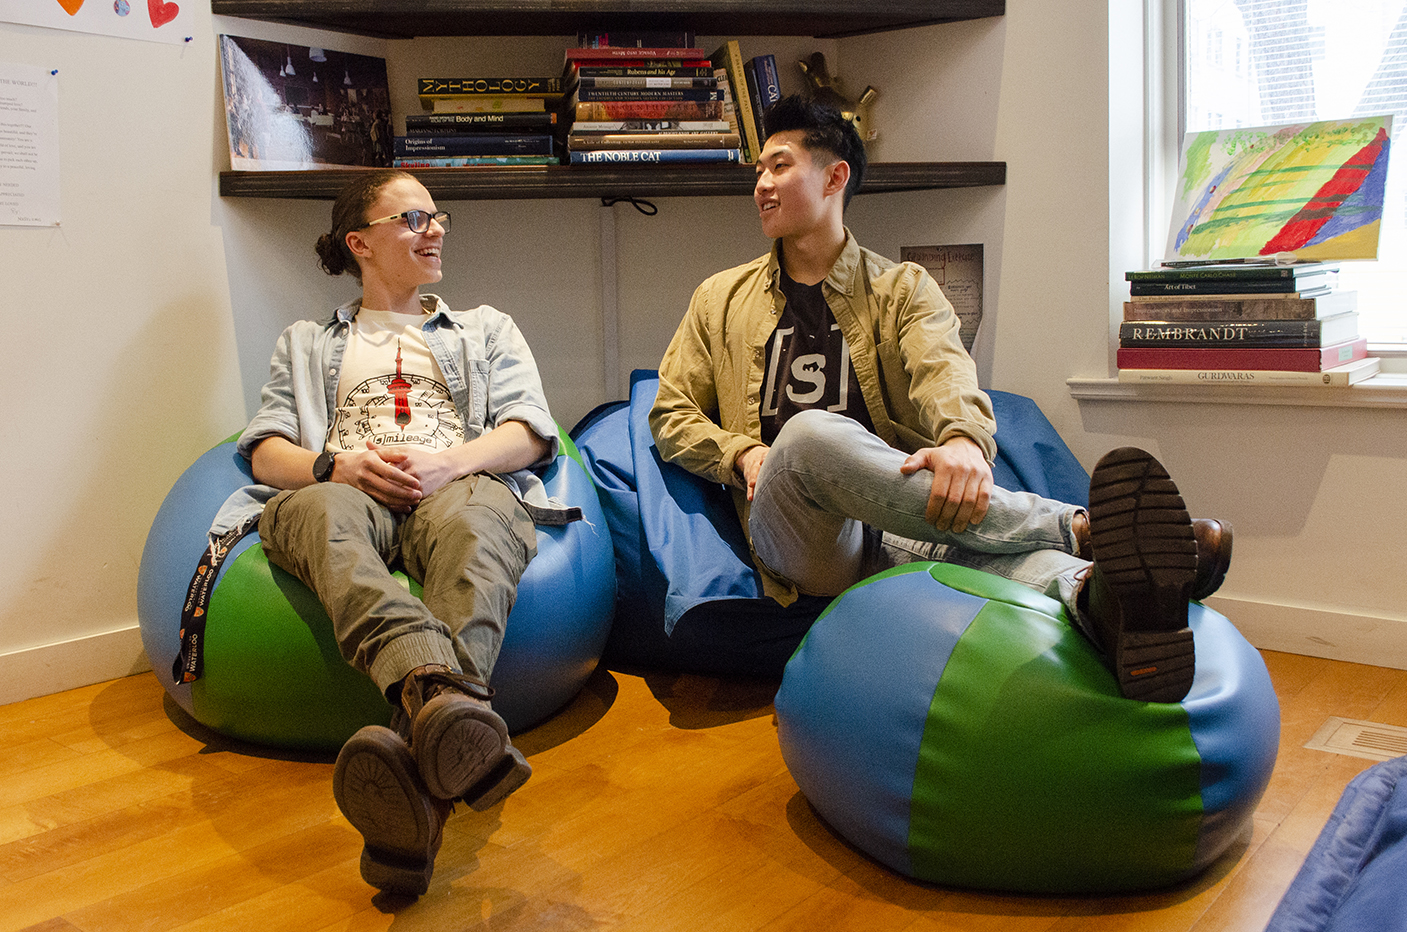 Wing and Alex laughing and looking at each other sitting on bean bags in the Stella's Place cafe